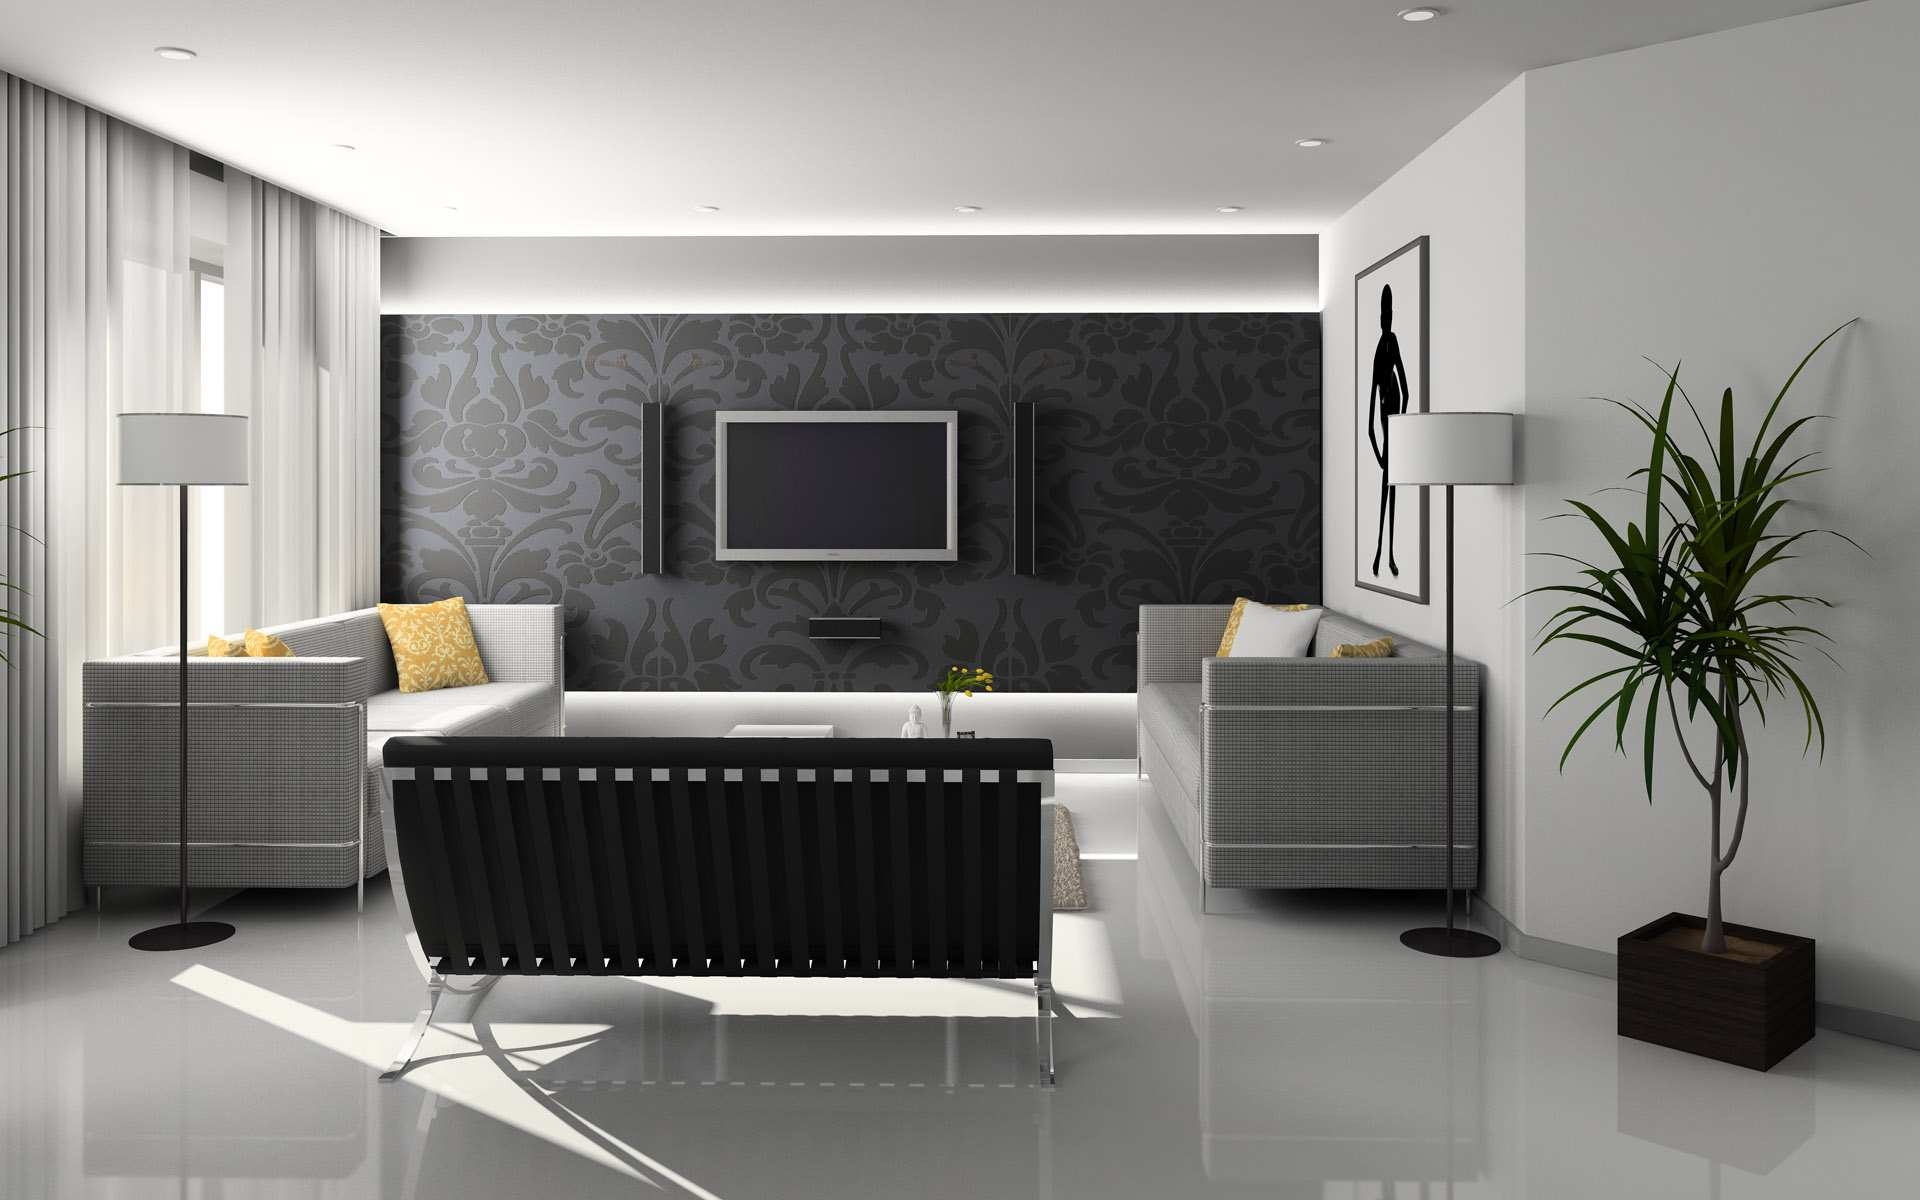 Chennai_interior_Independent_house_interior